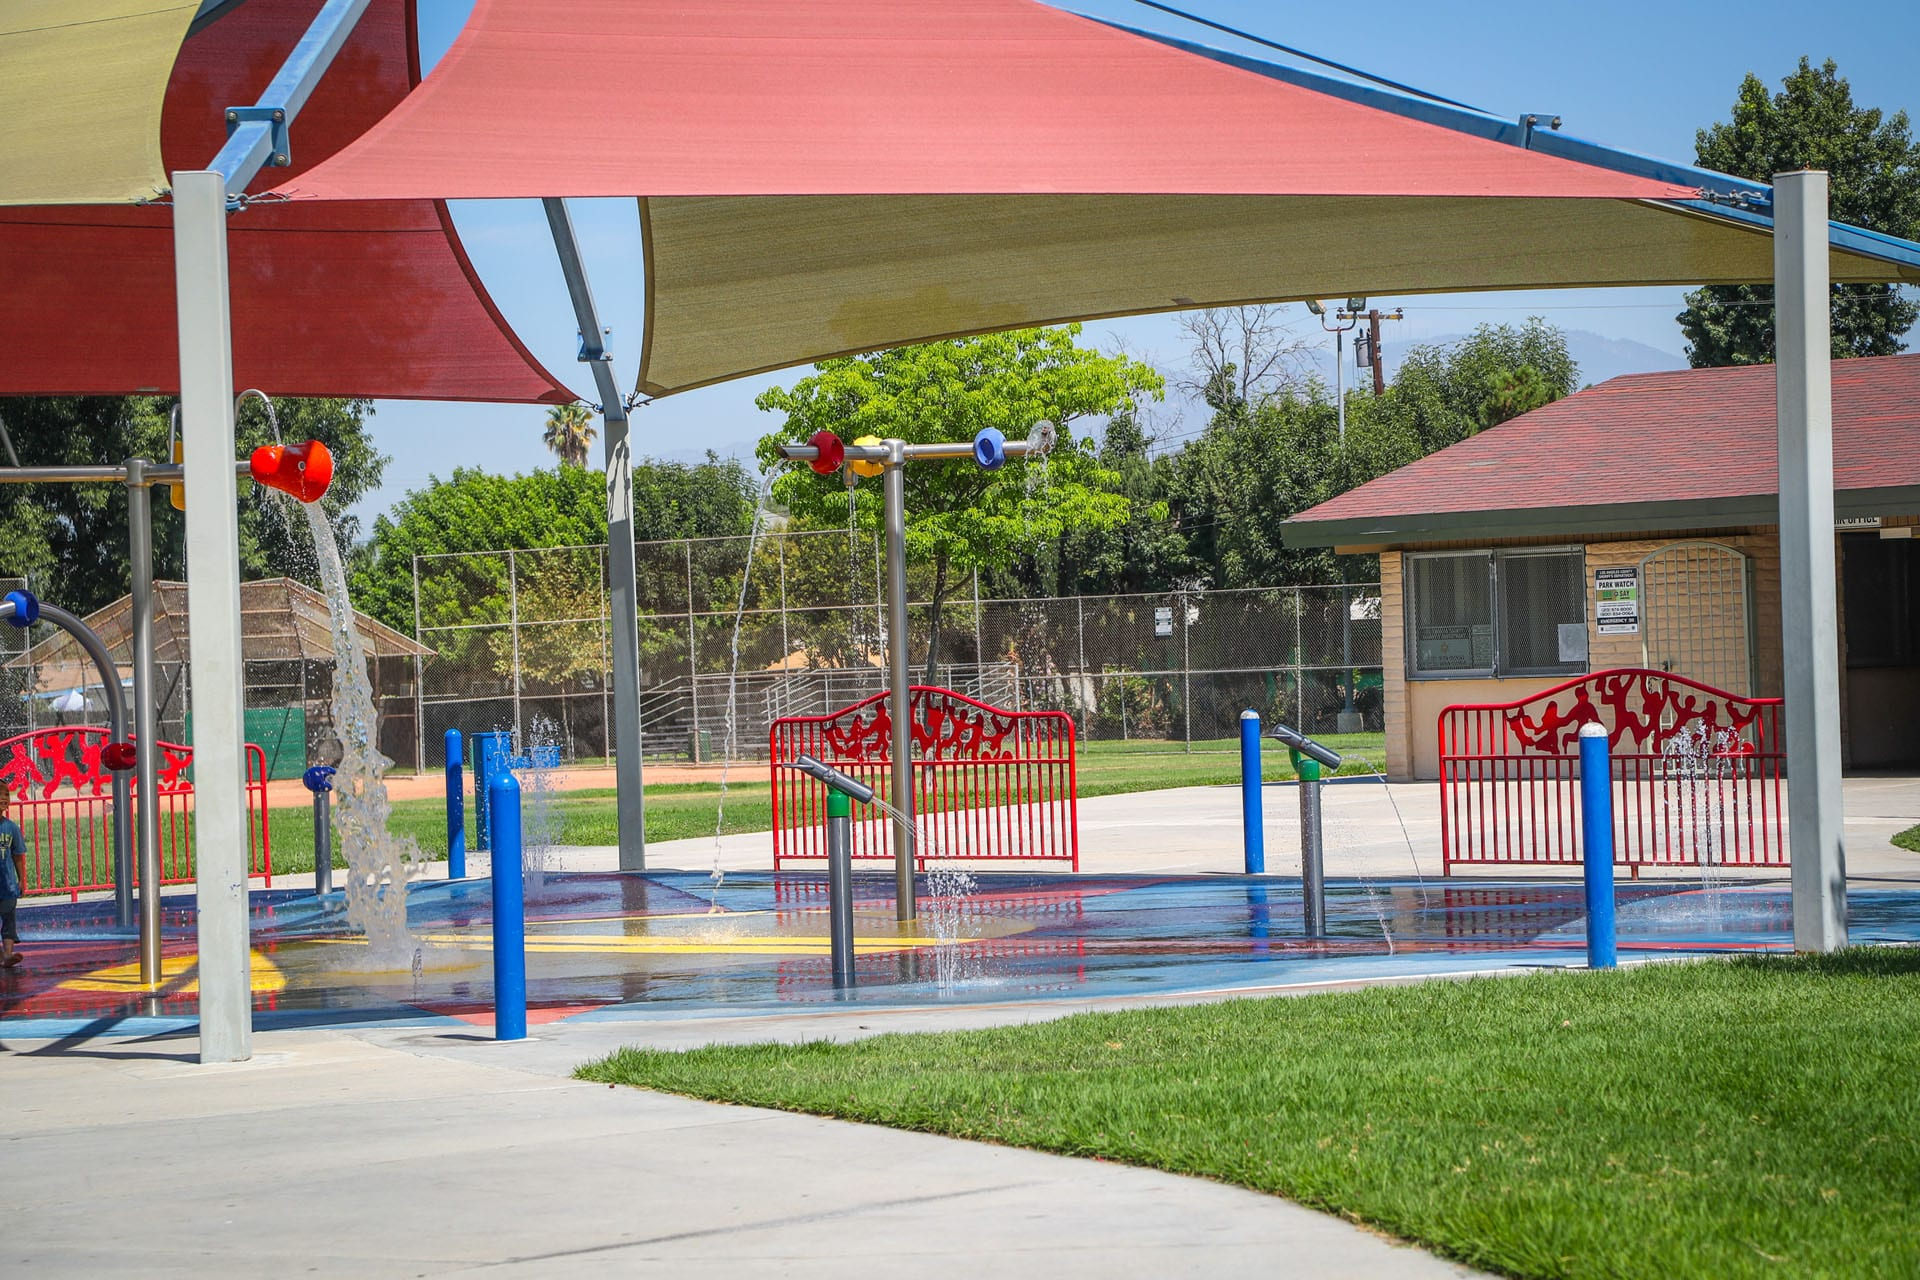 Tent-covered splash pad